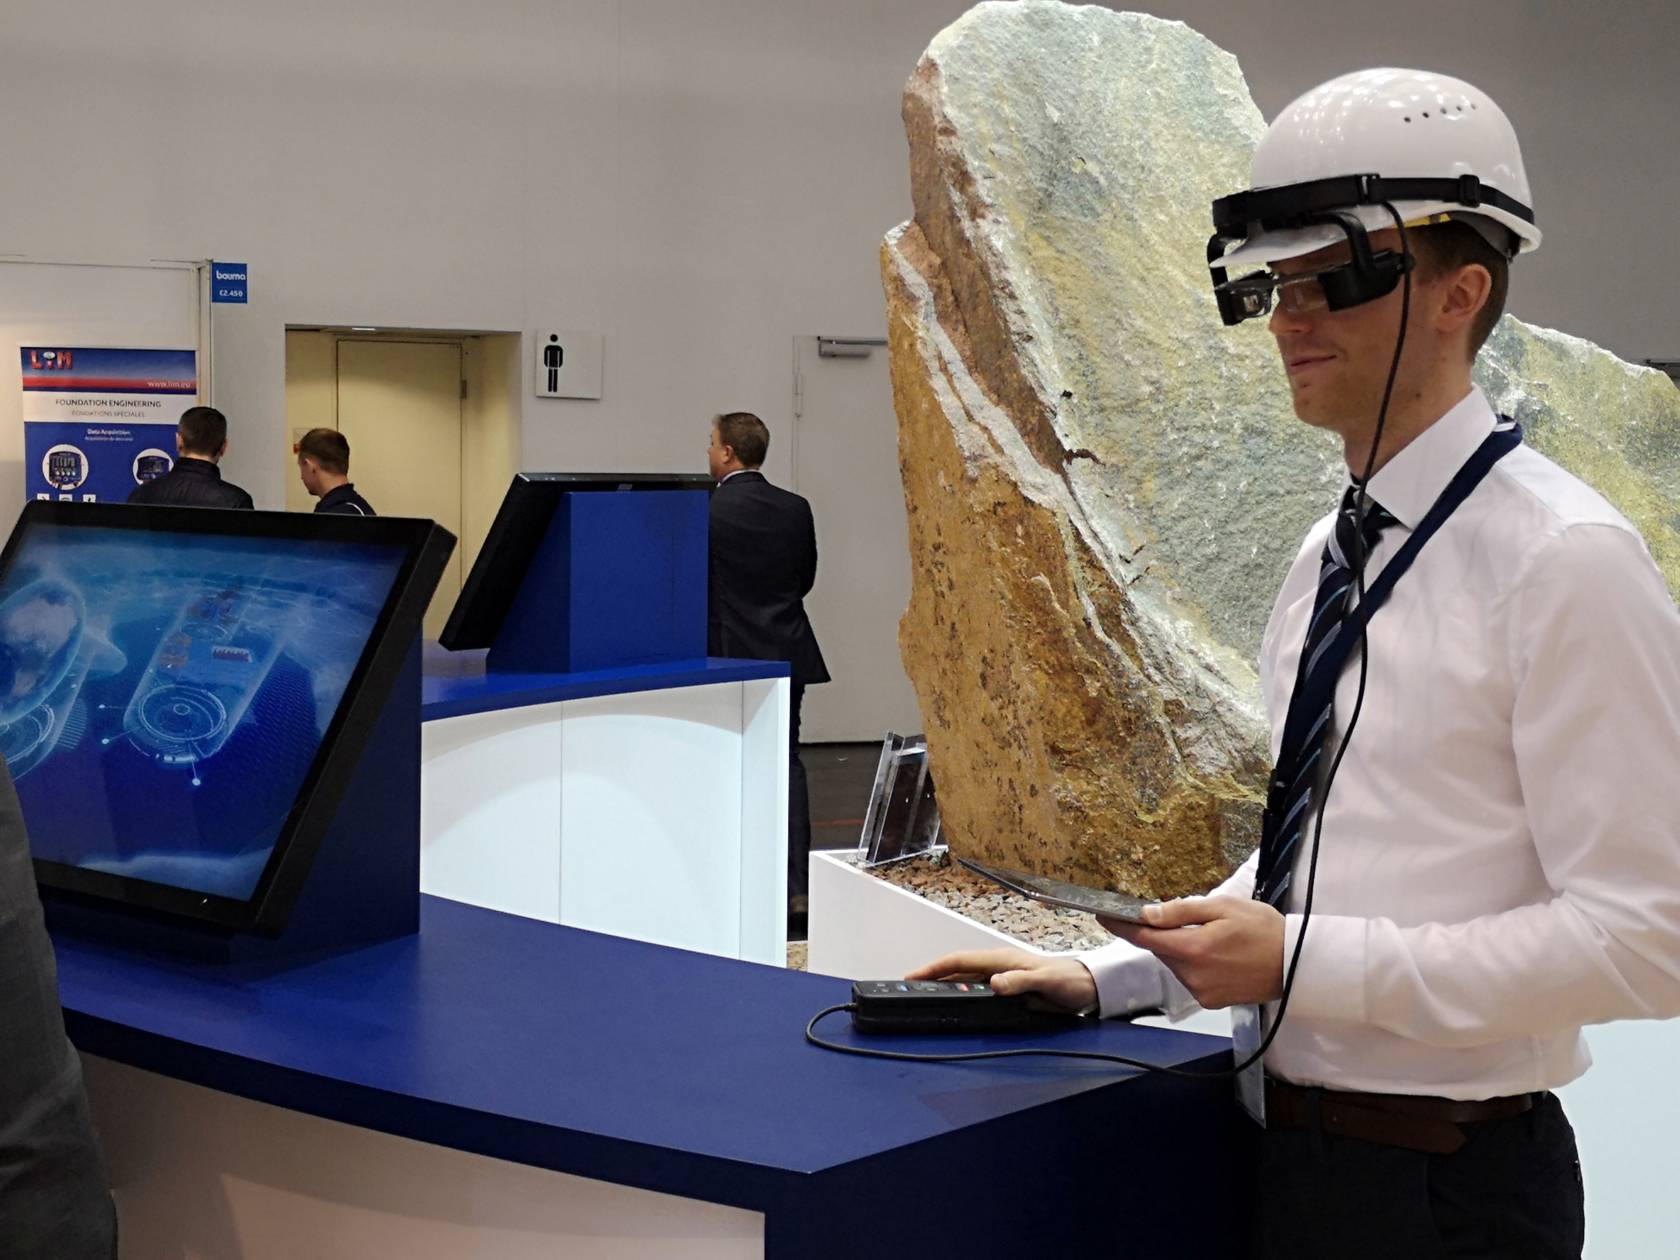 """This picture shows the use of TAKRAFs remote support application – """"smart glasses"""". By using this tool, experts in an office environment can connect to commissioning or maintenance staff on site to solve specific problems. This system was demonstrated at the 2019 BAUMA exhibition in Munich (Germany) and attracted a lot of interest from a variety of visitors."""